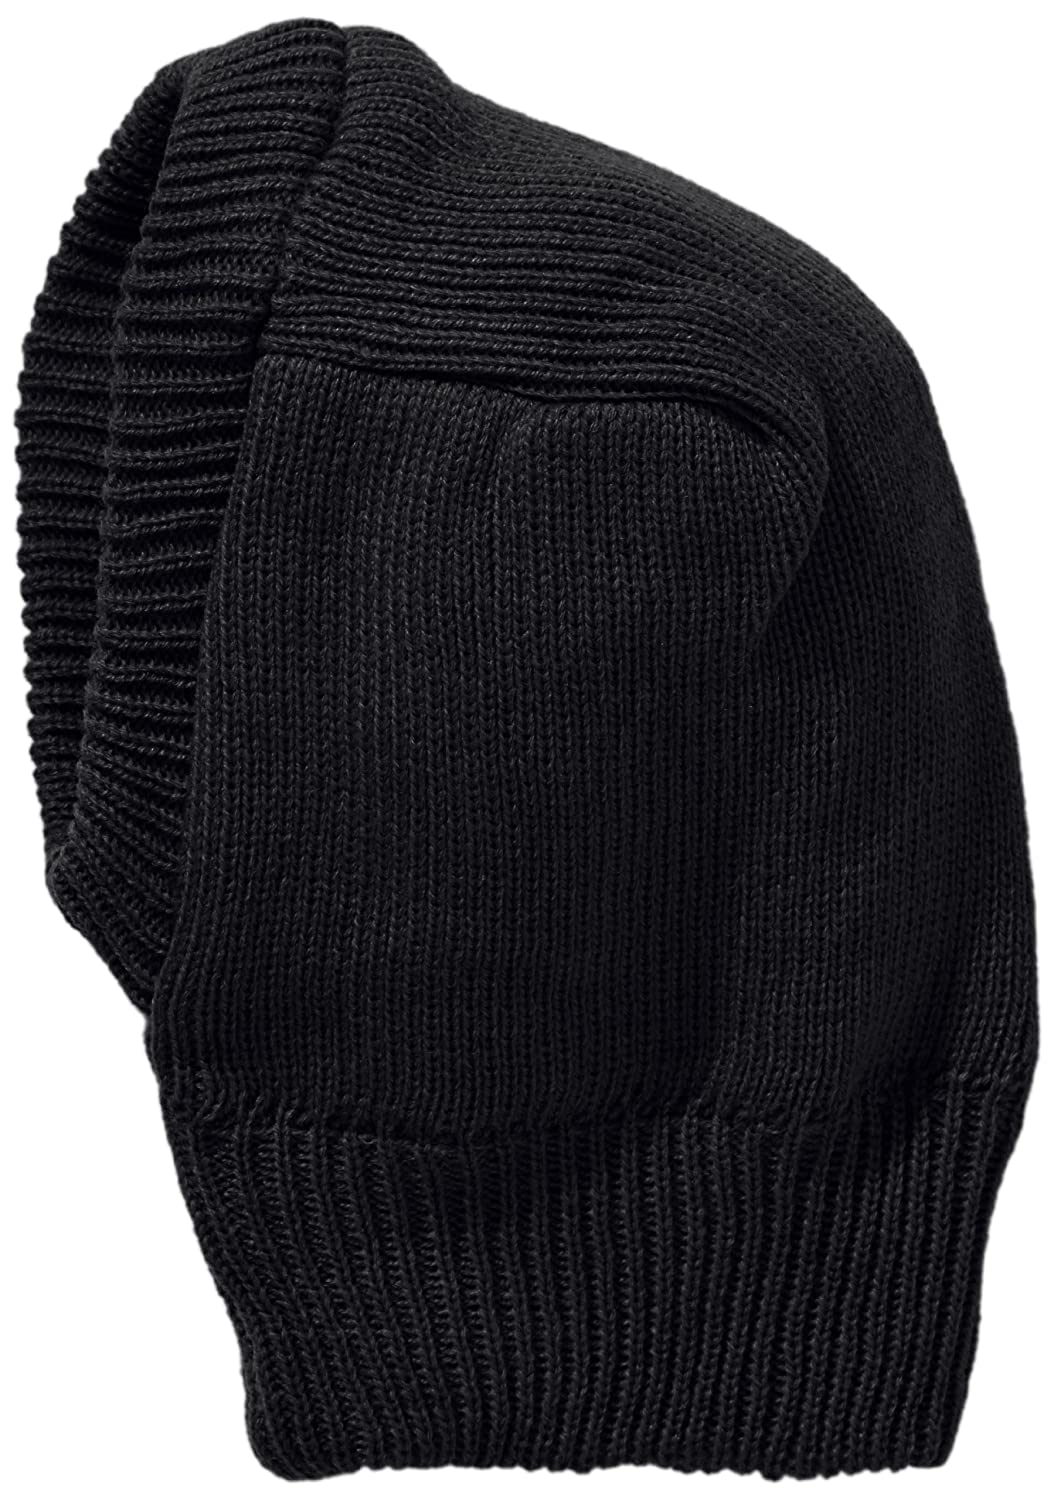 franklis - Children's Knitted Balaclava fraenklis 0-966-02